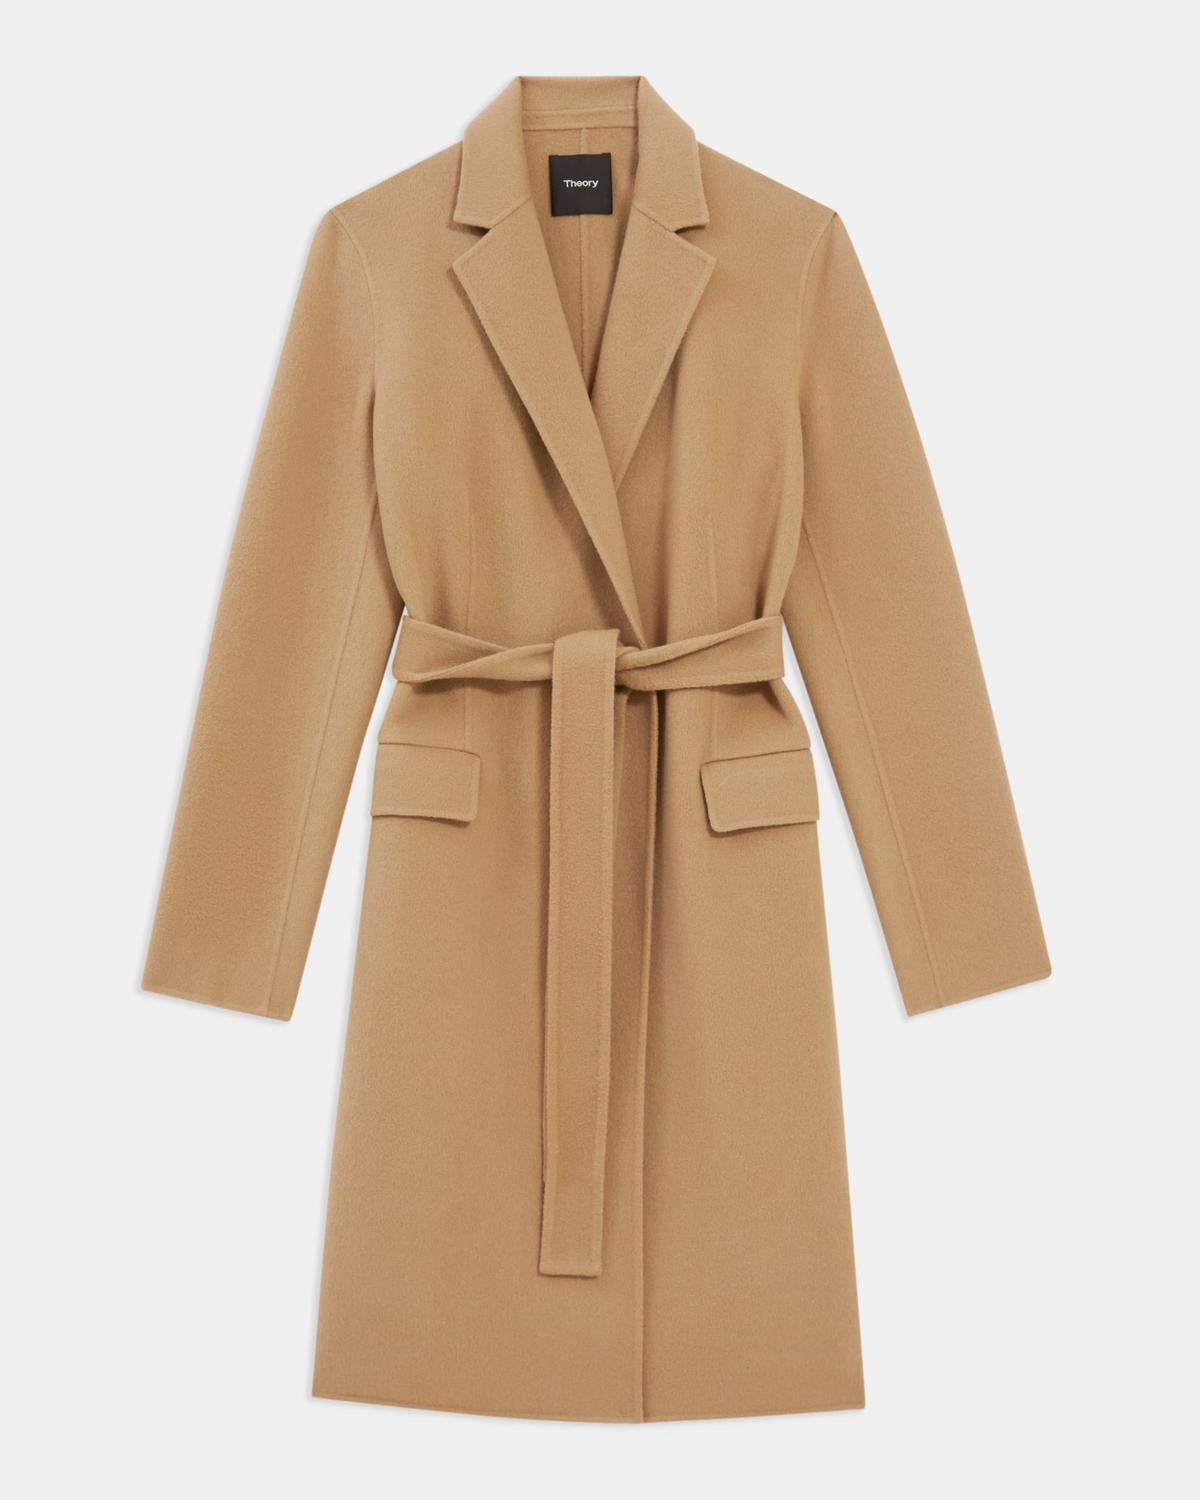 BELT COAT | Theory